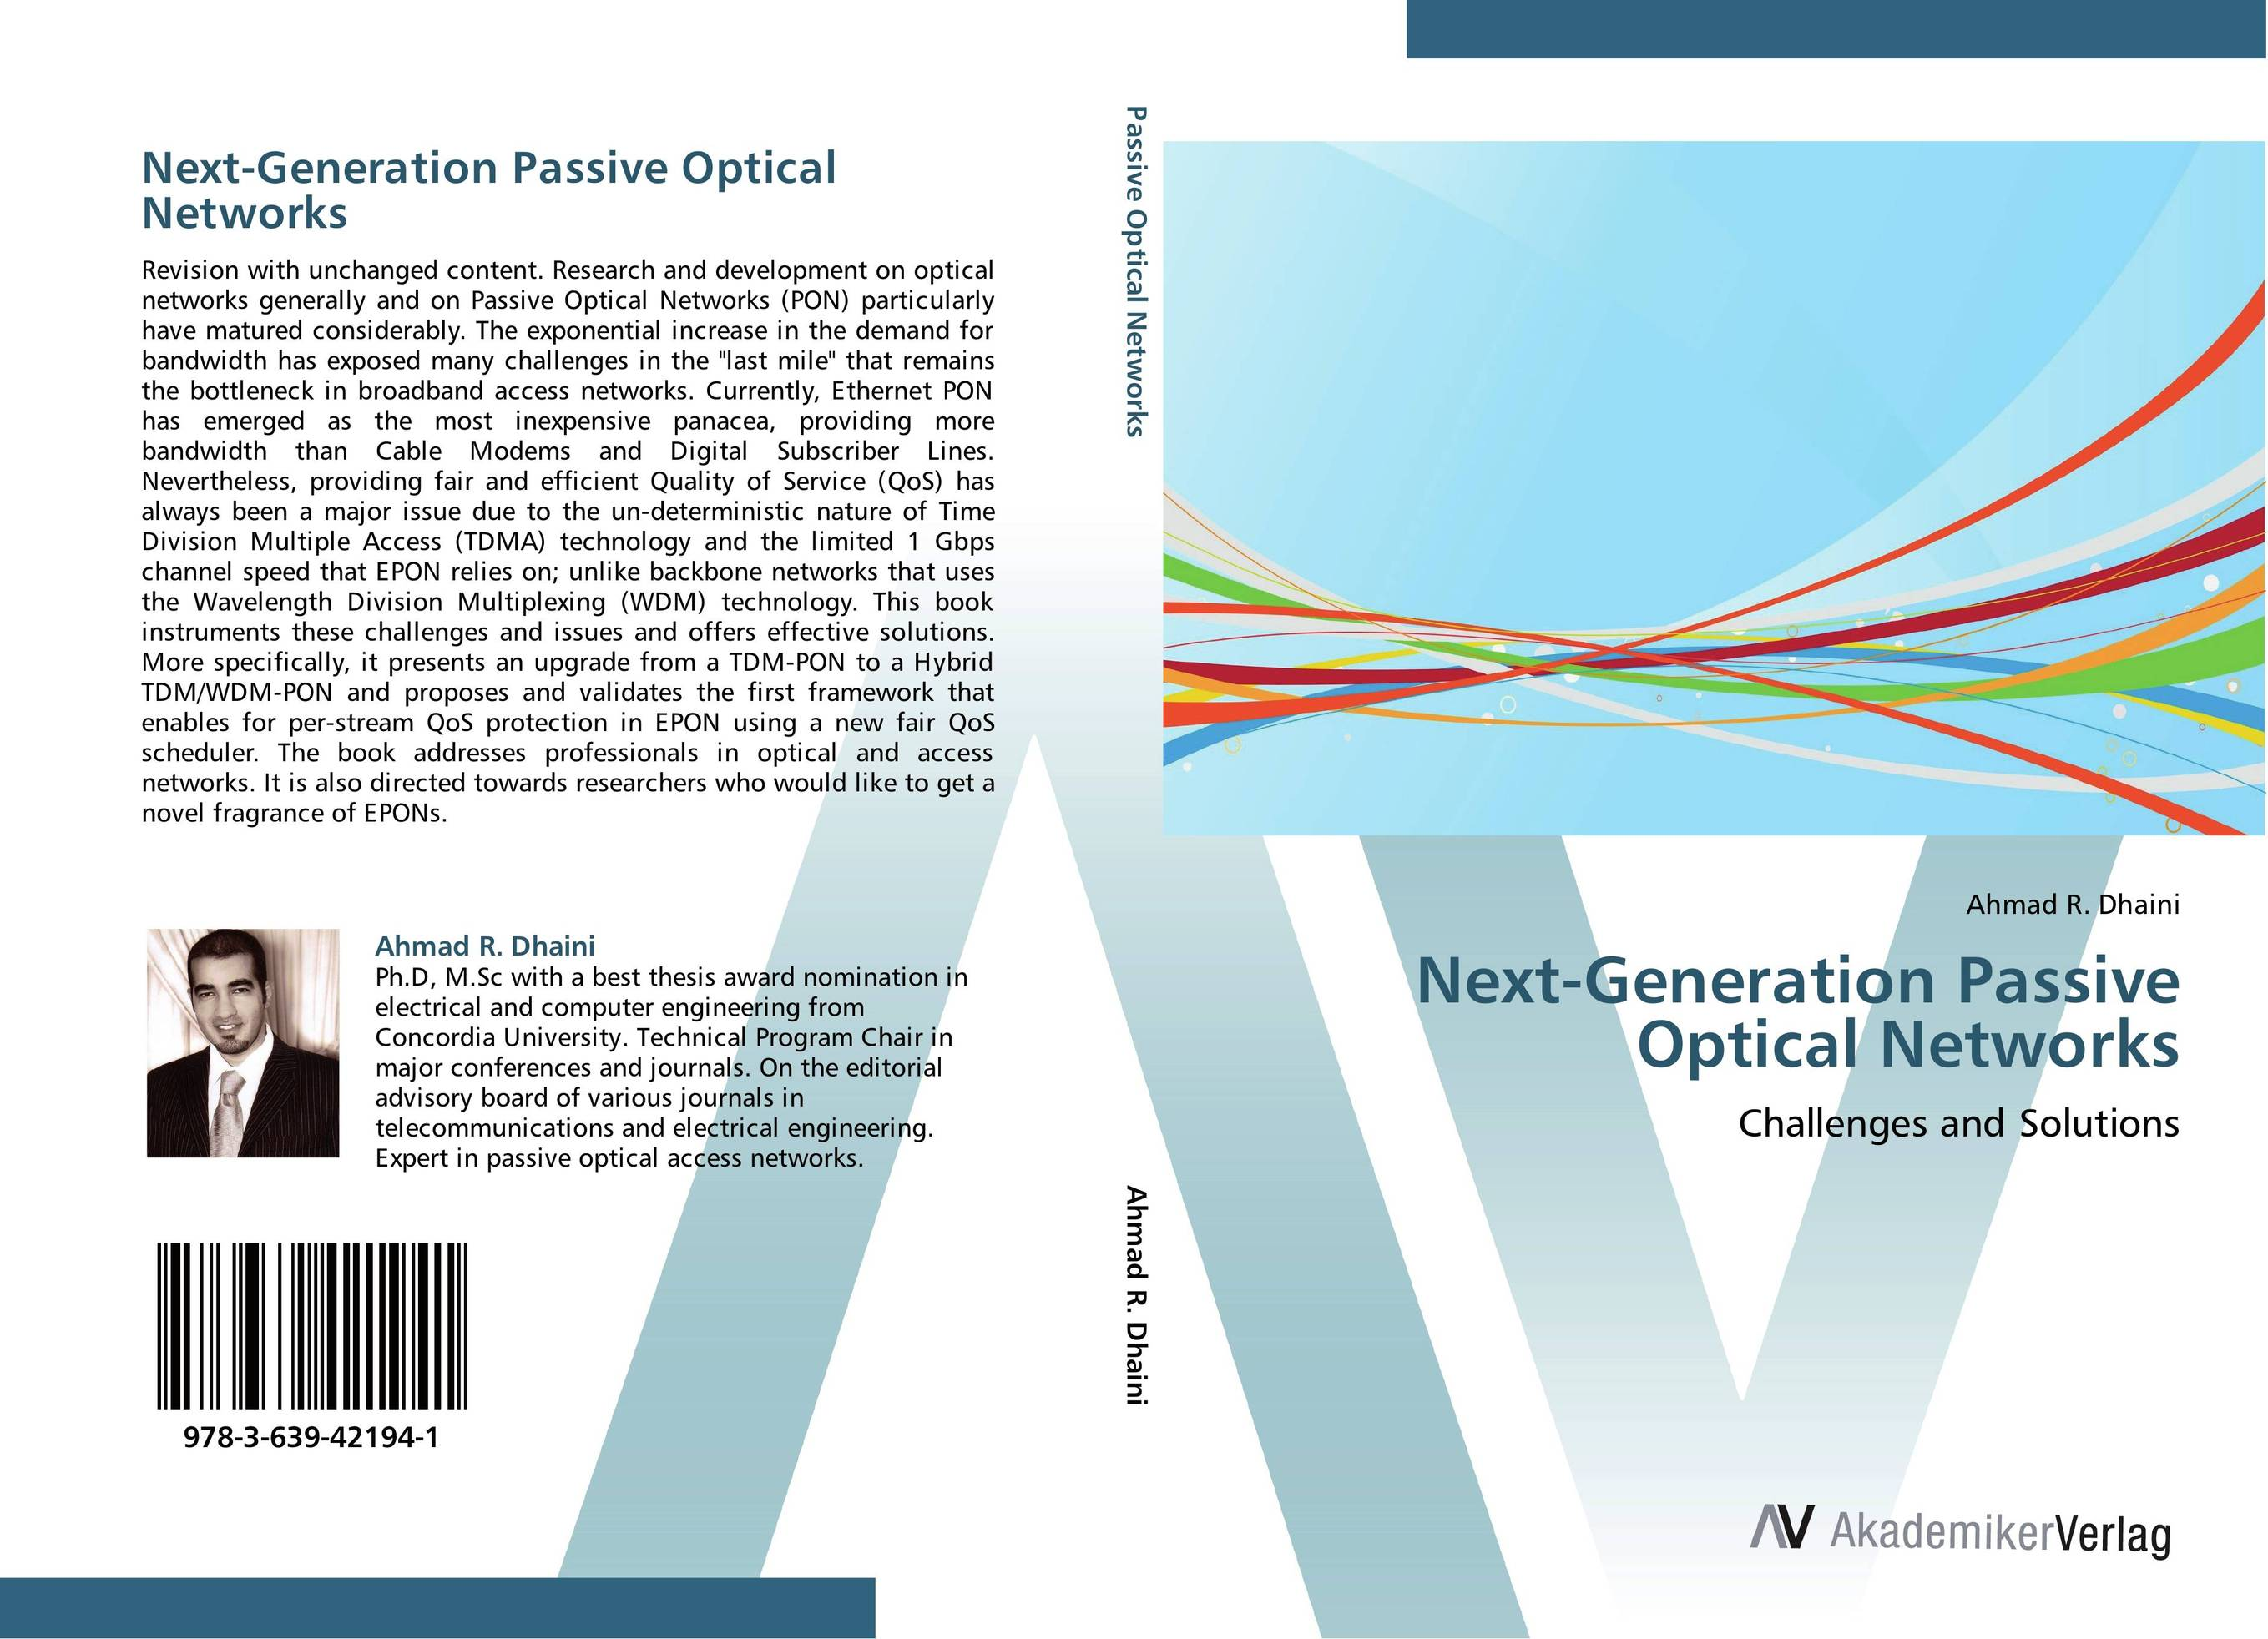 Next-Generation Passive Optical Networks advanced optical packet switches over wdm networks